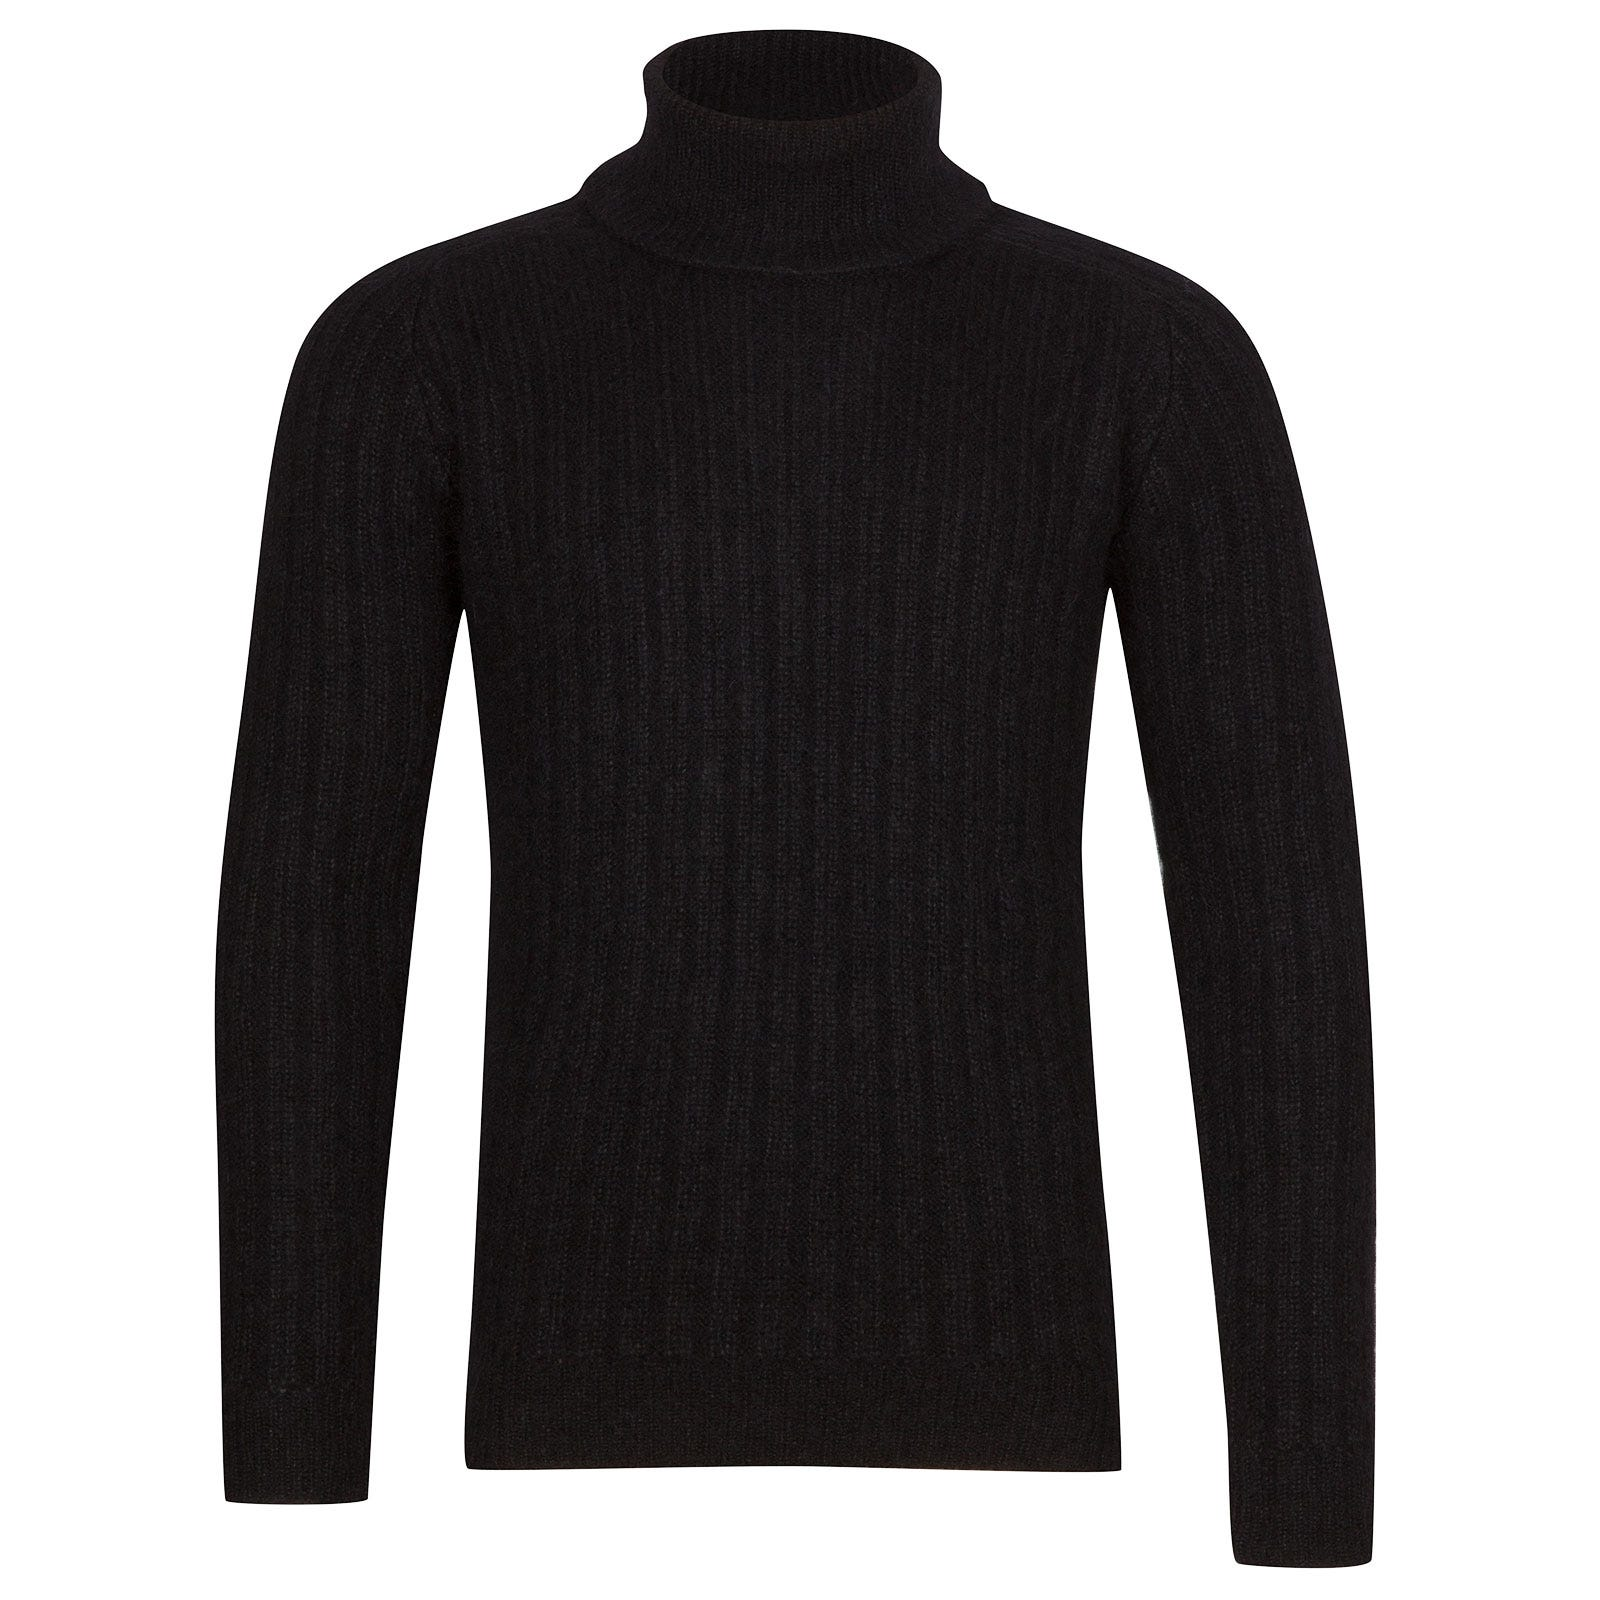 John Smedley Degree Viscose Blend Pullover In Black-S